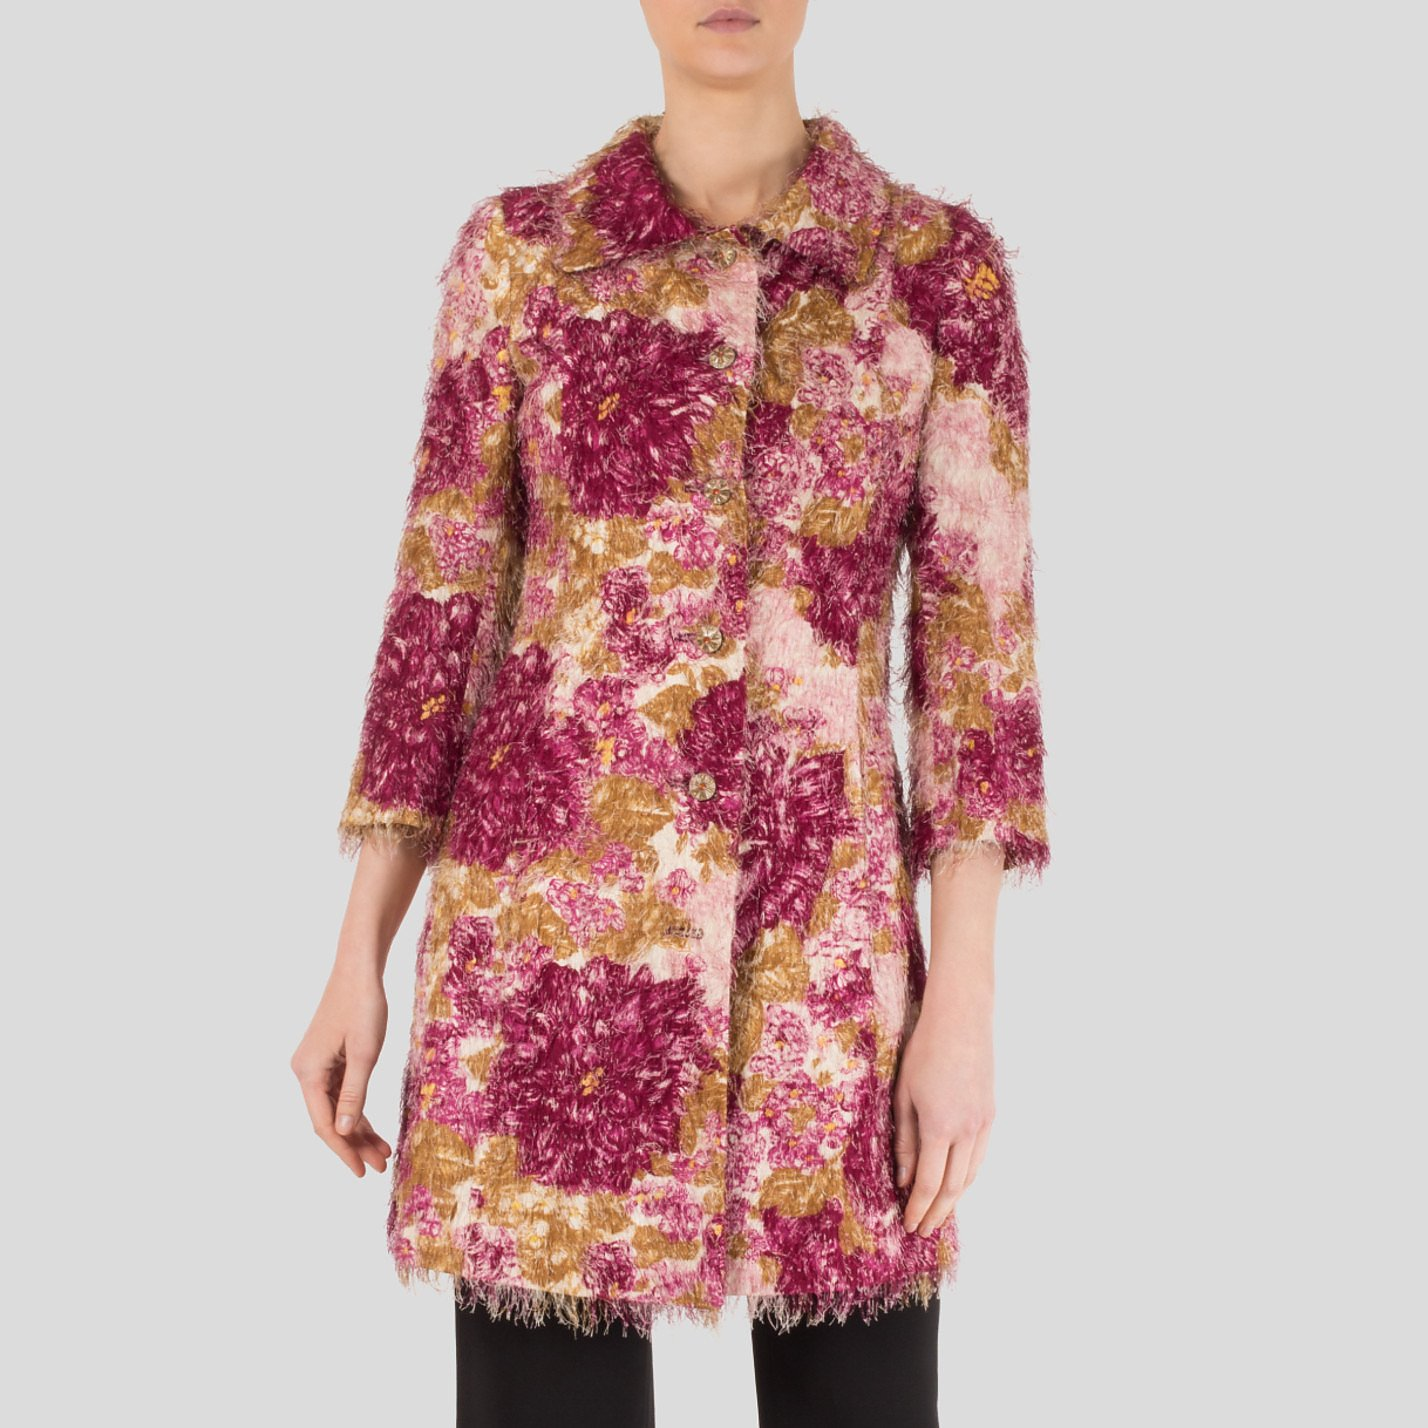 DOLCE & GABBANA Floral Patterned Long Jacket